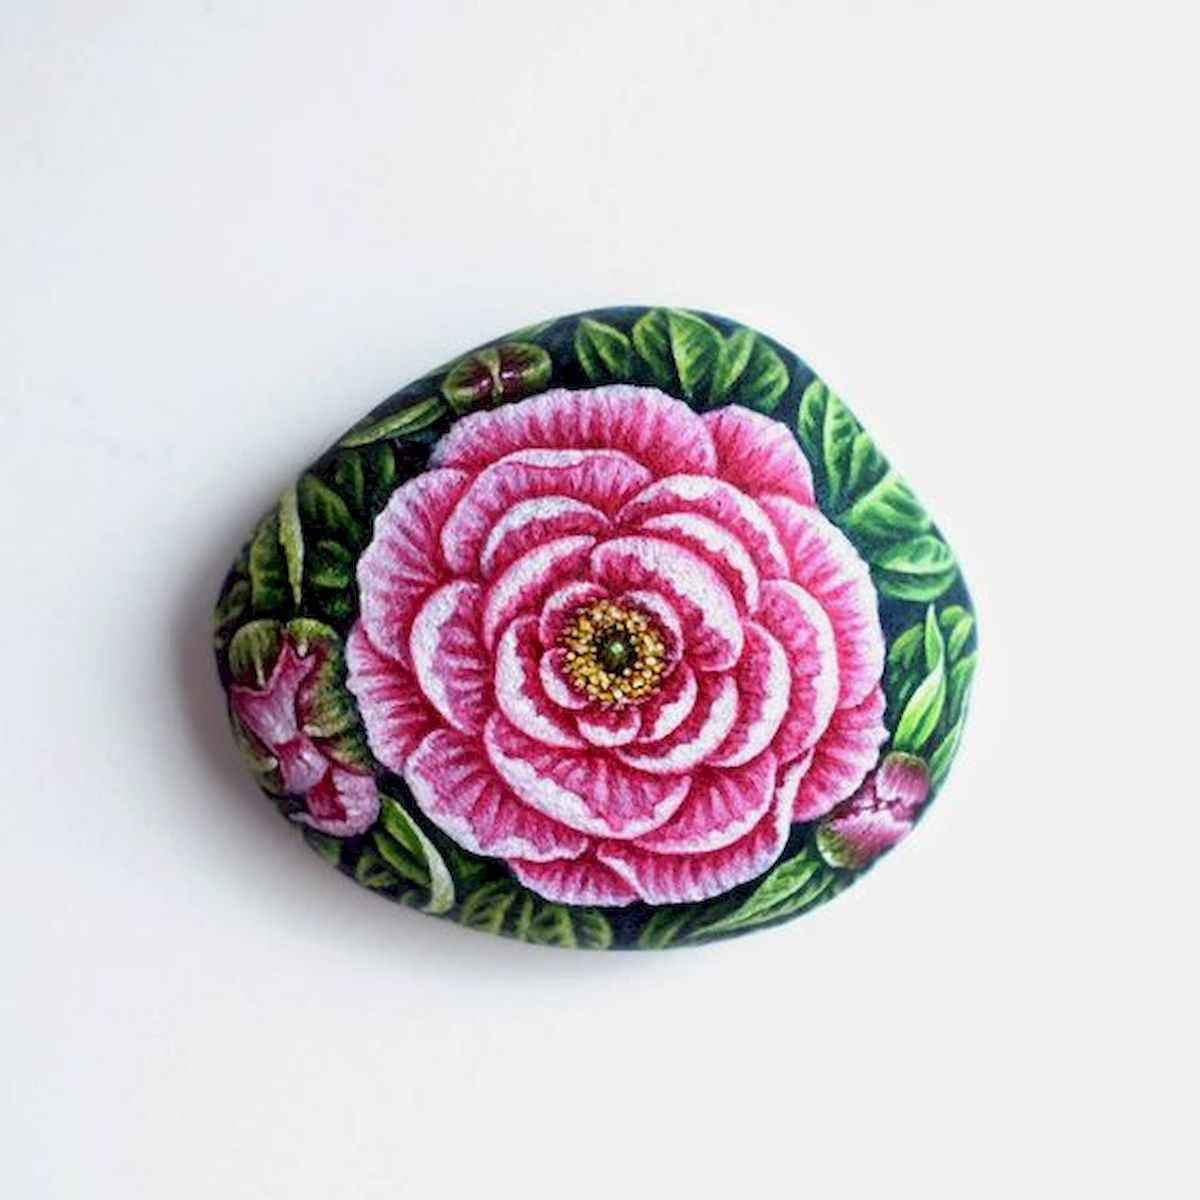 25 Gorgeous Painted Rocks Valentines Day Ideas (3)